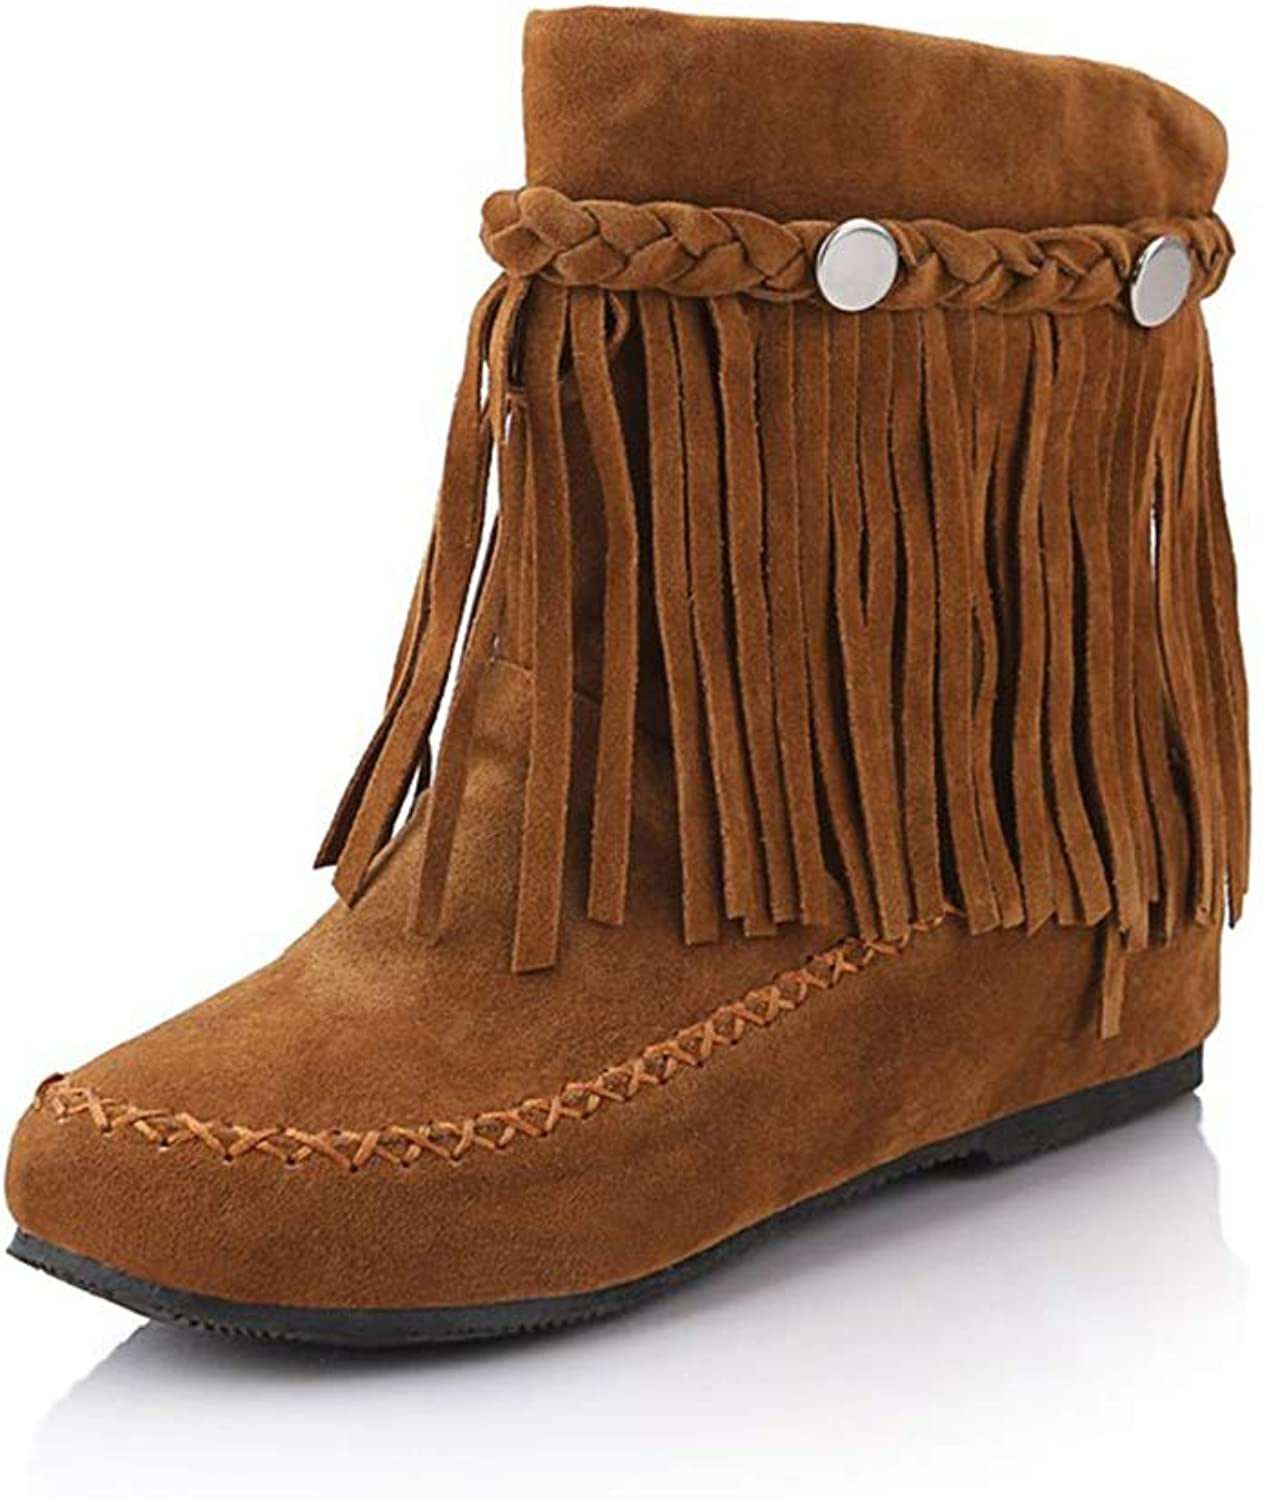 T-JULY Plus Size Autumn Women Boots Bohemia Mid Calf Boot Female Elevator shoes Fashion Fringe Slip On Botas for Ladies Footwear